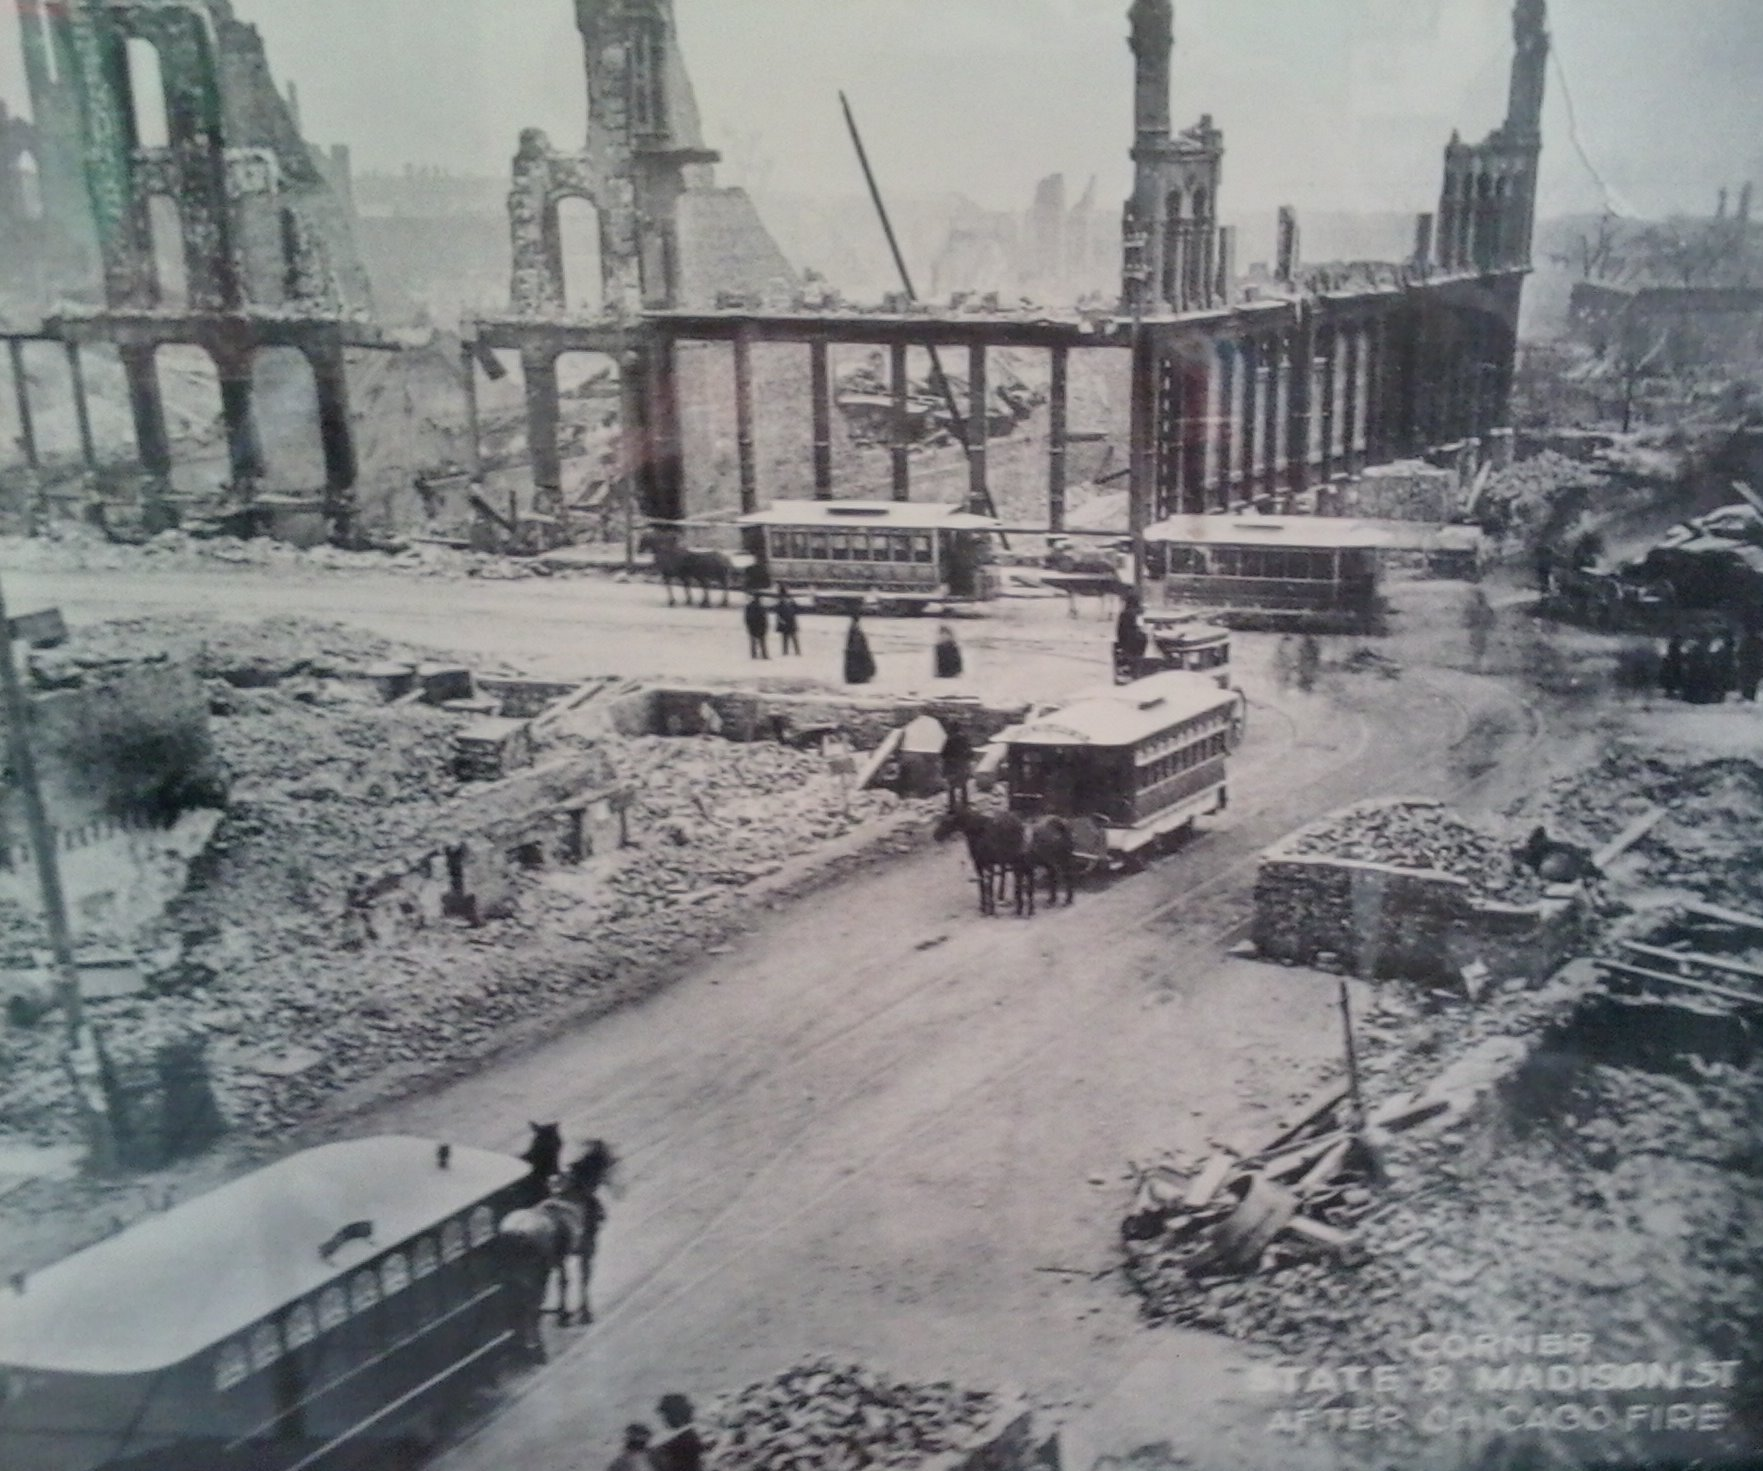 How Many Buildings Were Destroyed In The Great Chicago Fire